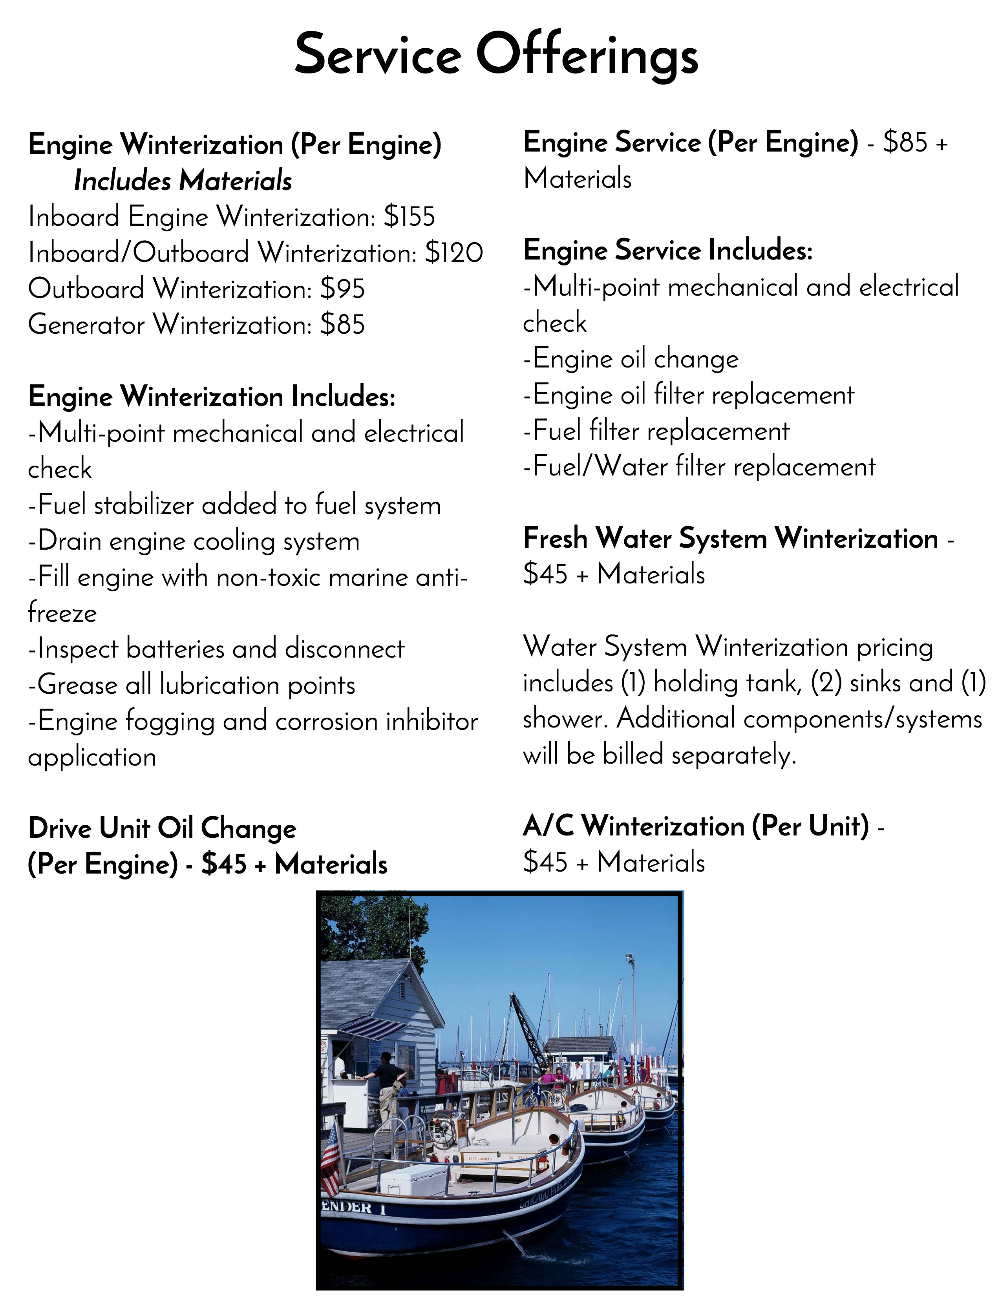 Brightwork Marine Service Offerings